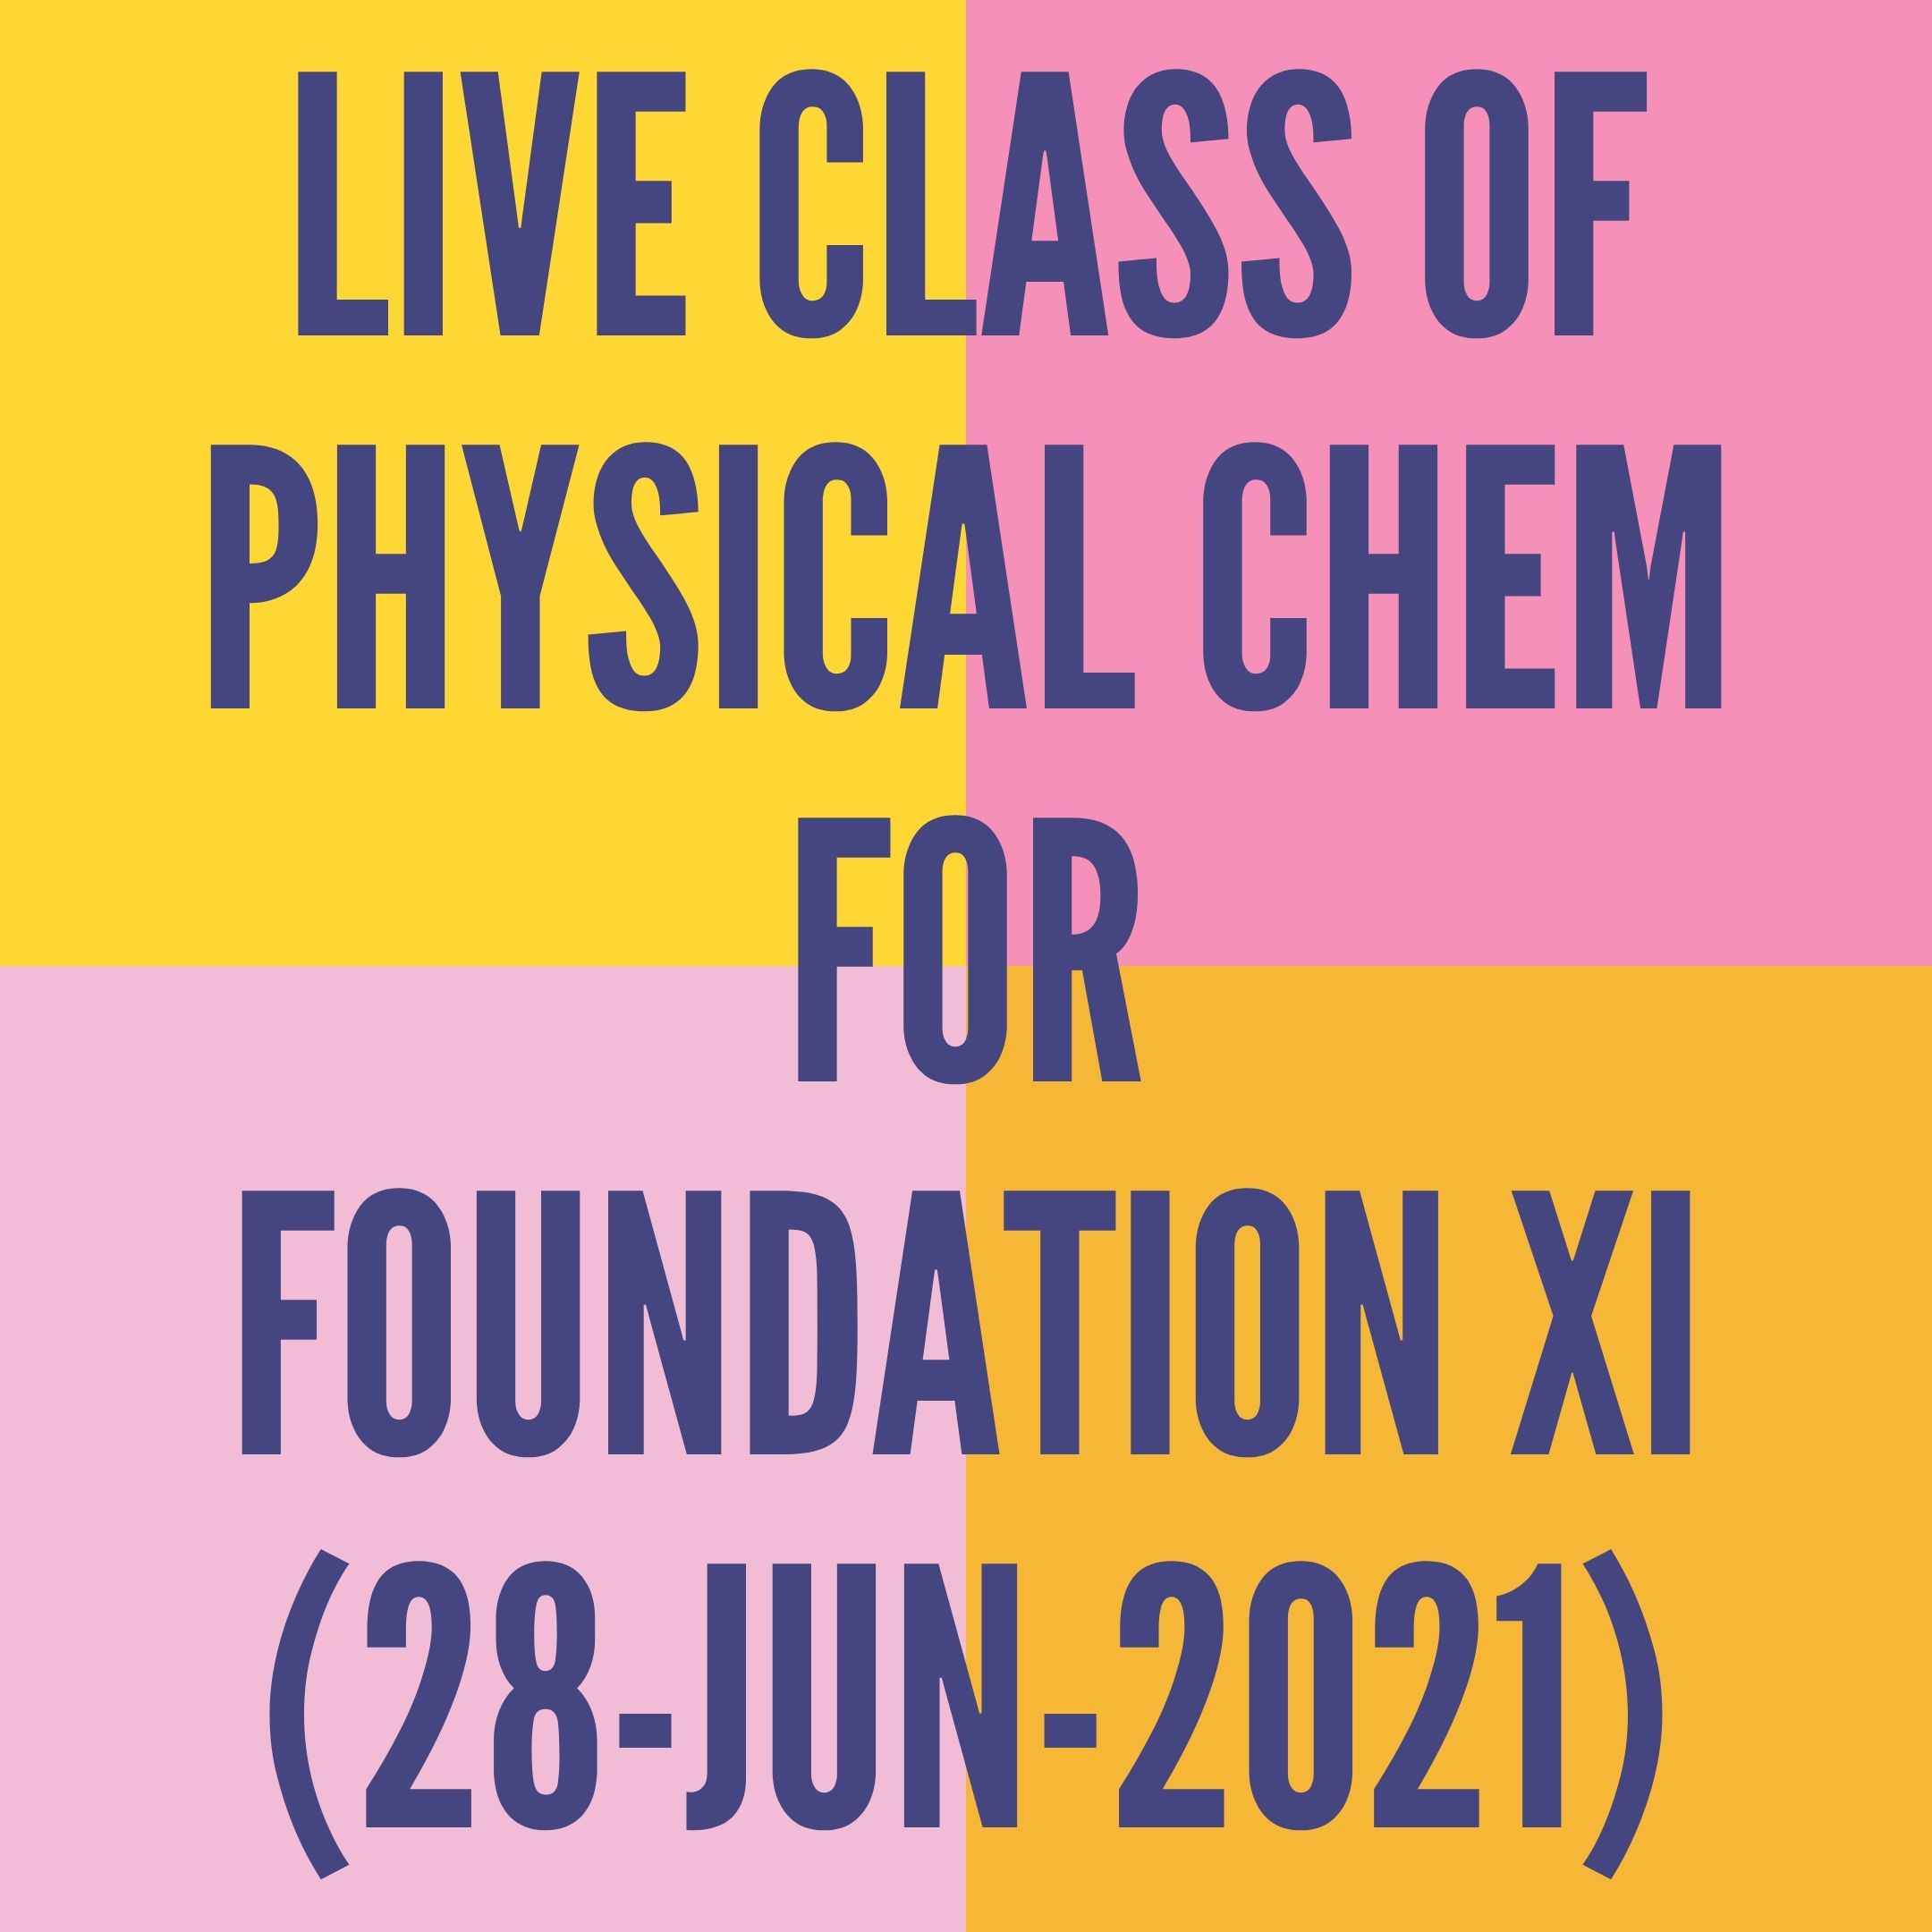 LIVE CLASS OF PHYSICAL CHEMISTRY FOR FOUNDATION XI (28-JUN-2021) CONCENTRATION OF SOLUTIONS